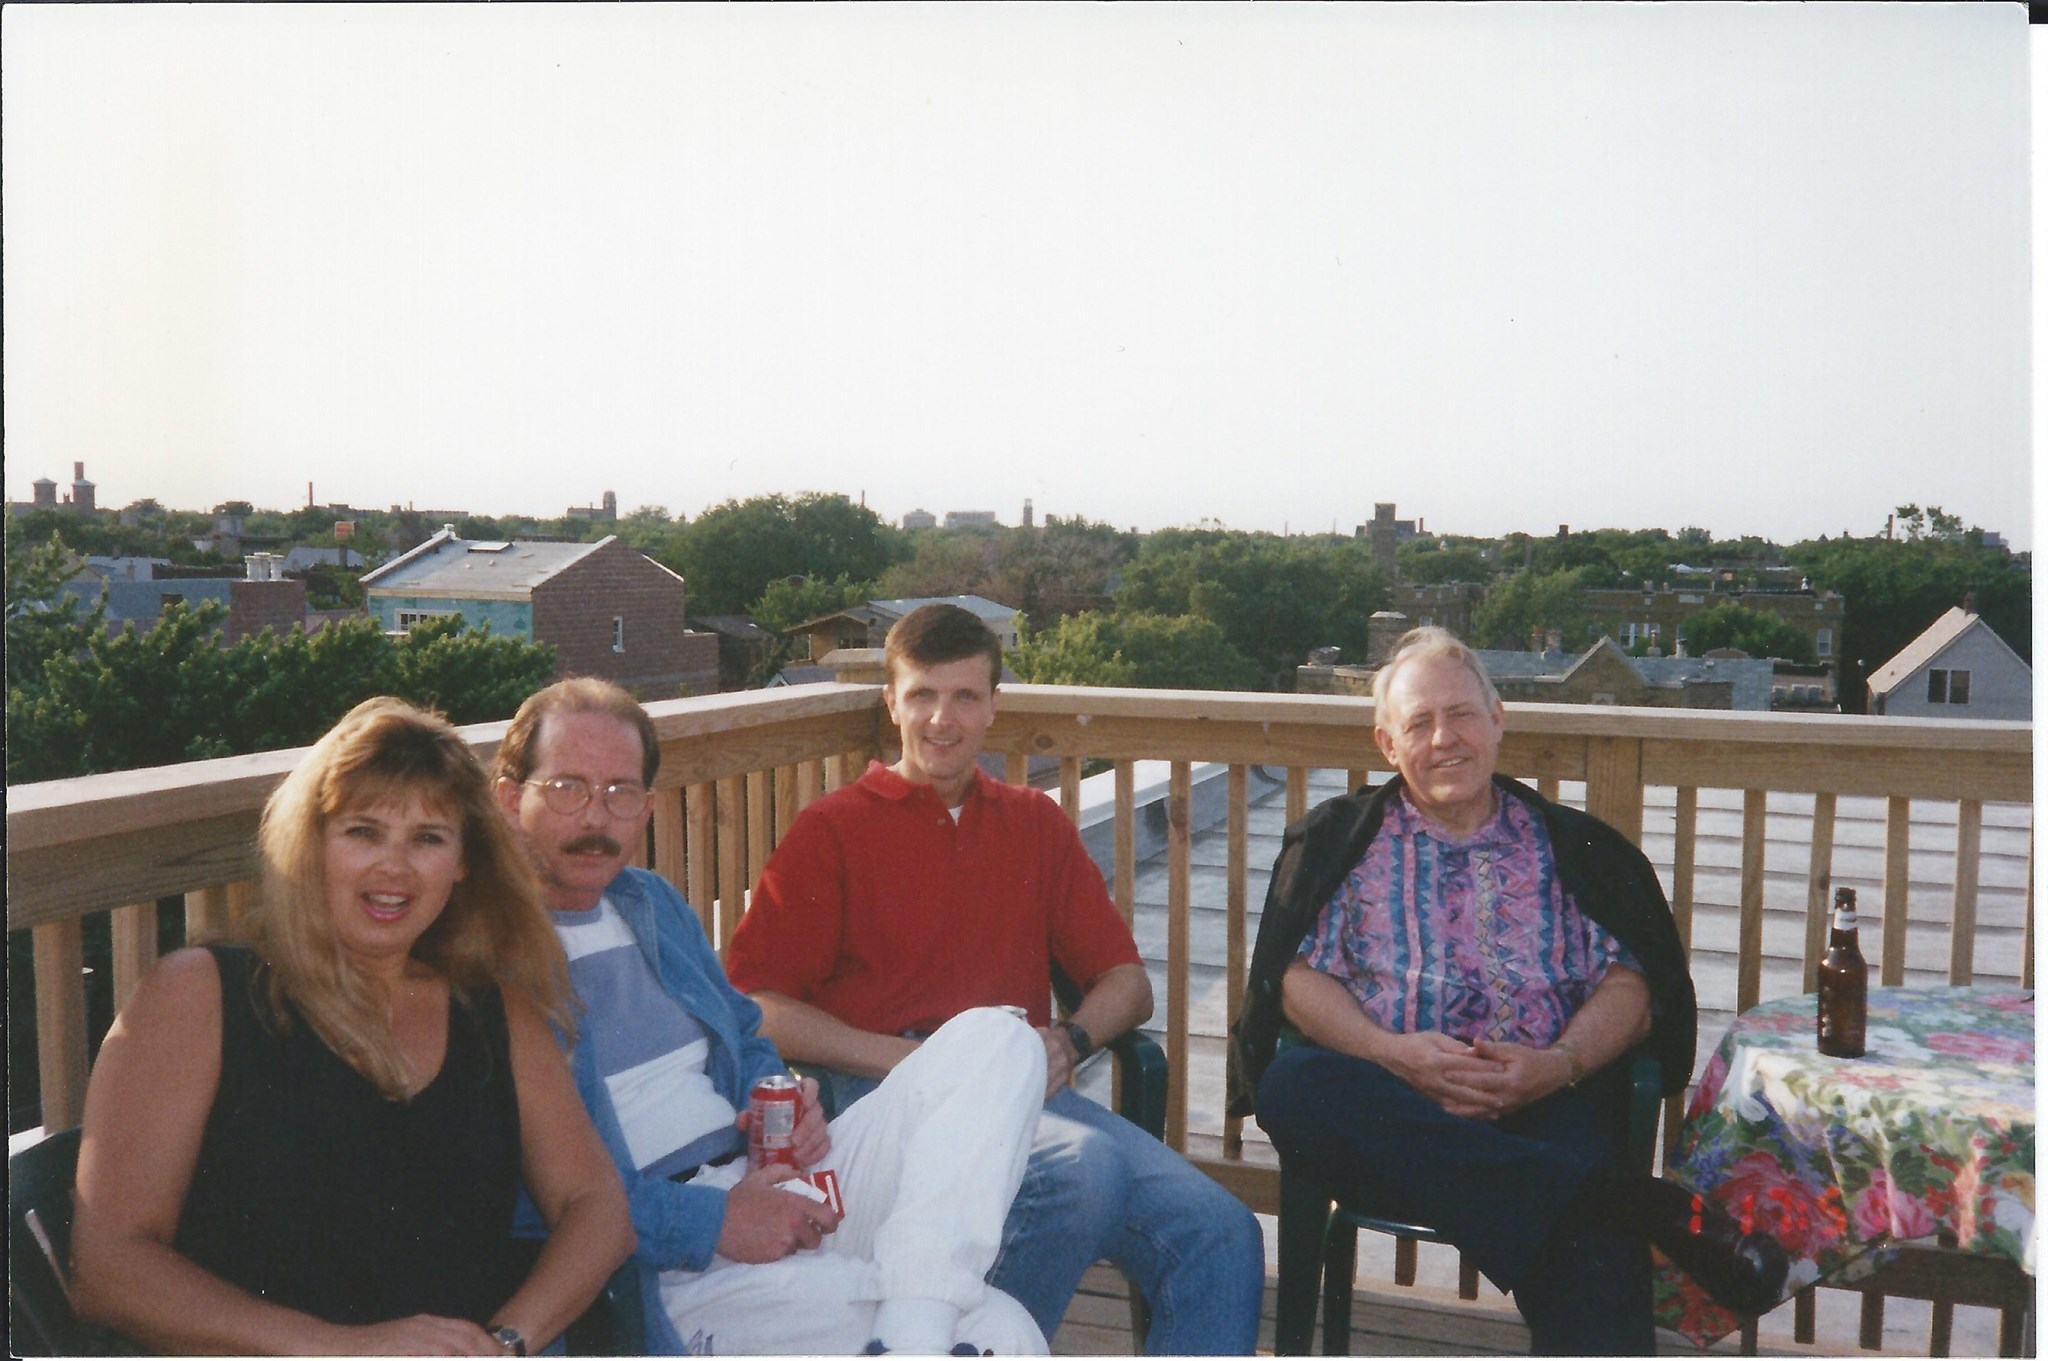 Mike with Michael Smyth, Harlan Terson and Gloria Wagner in Chicago